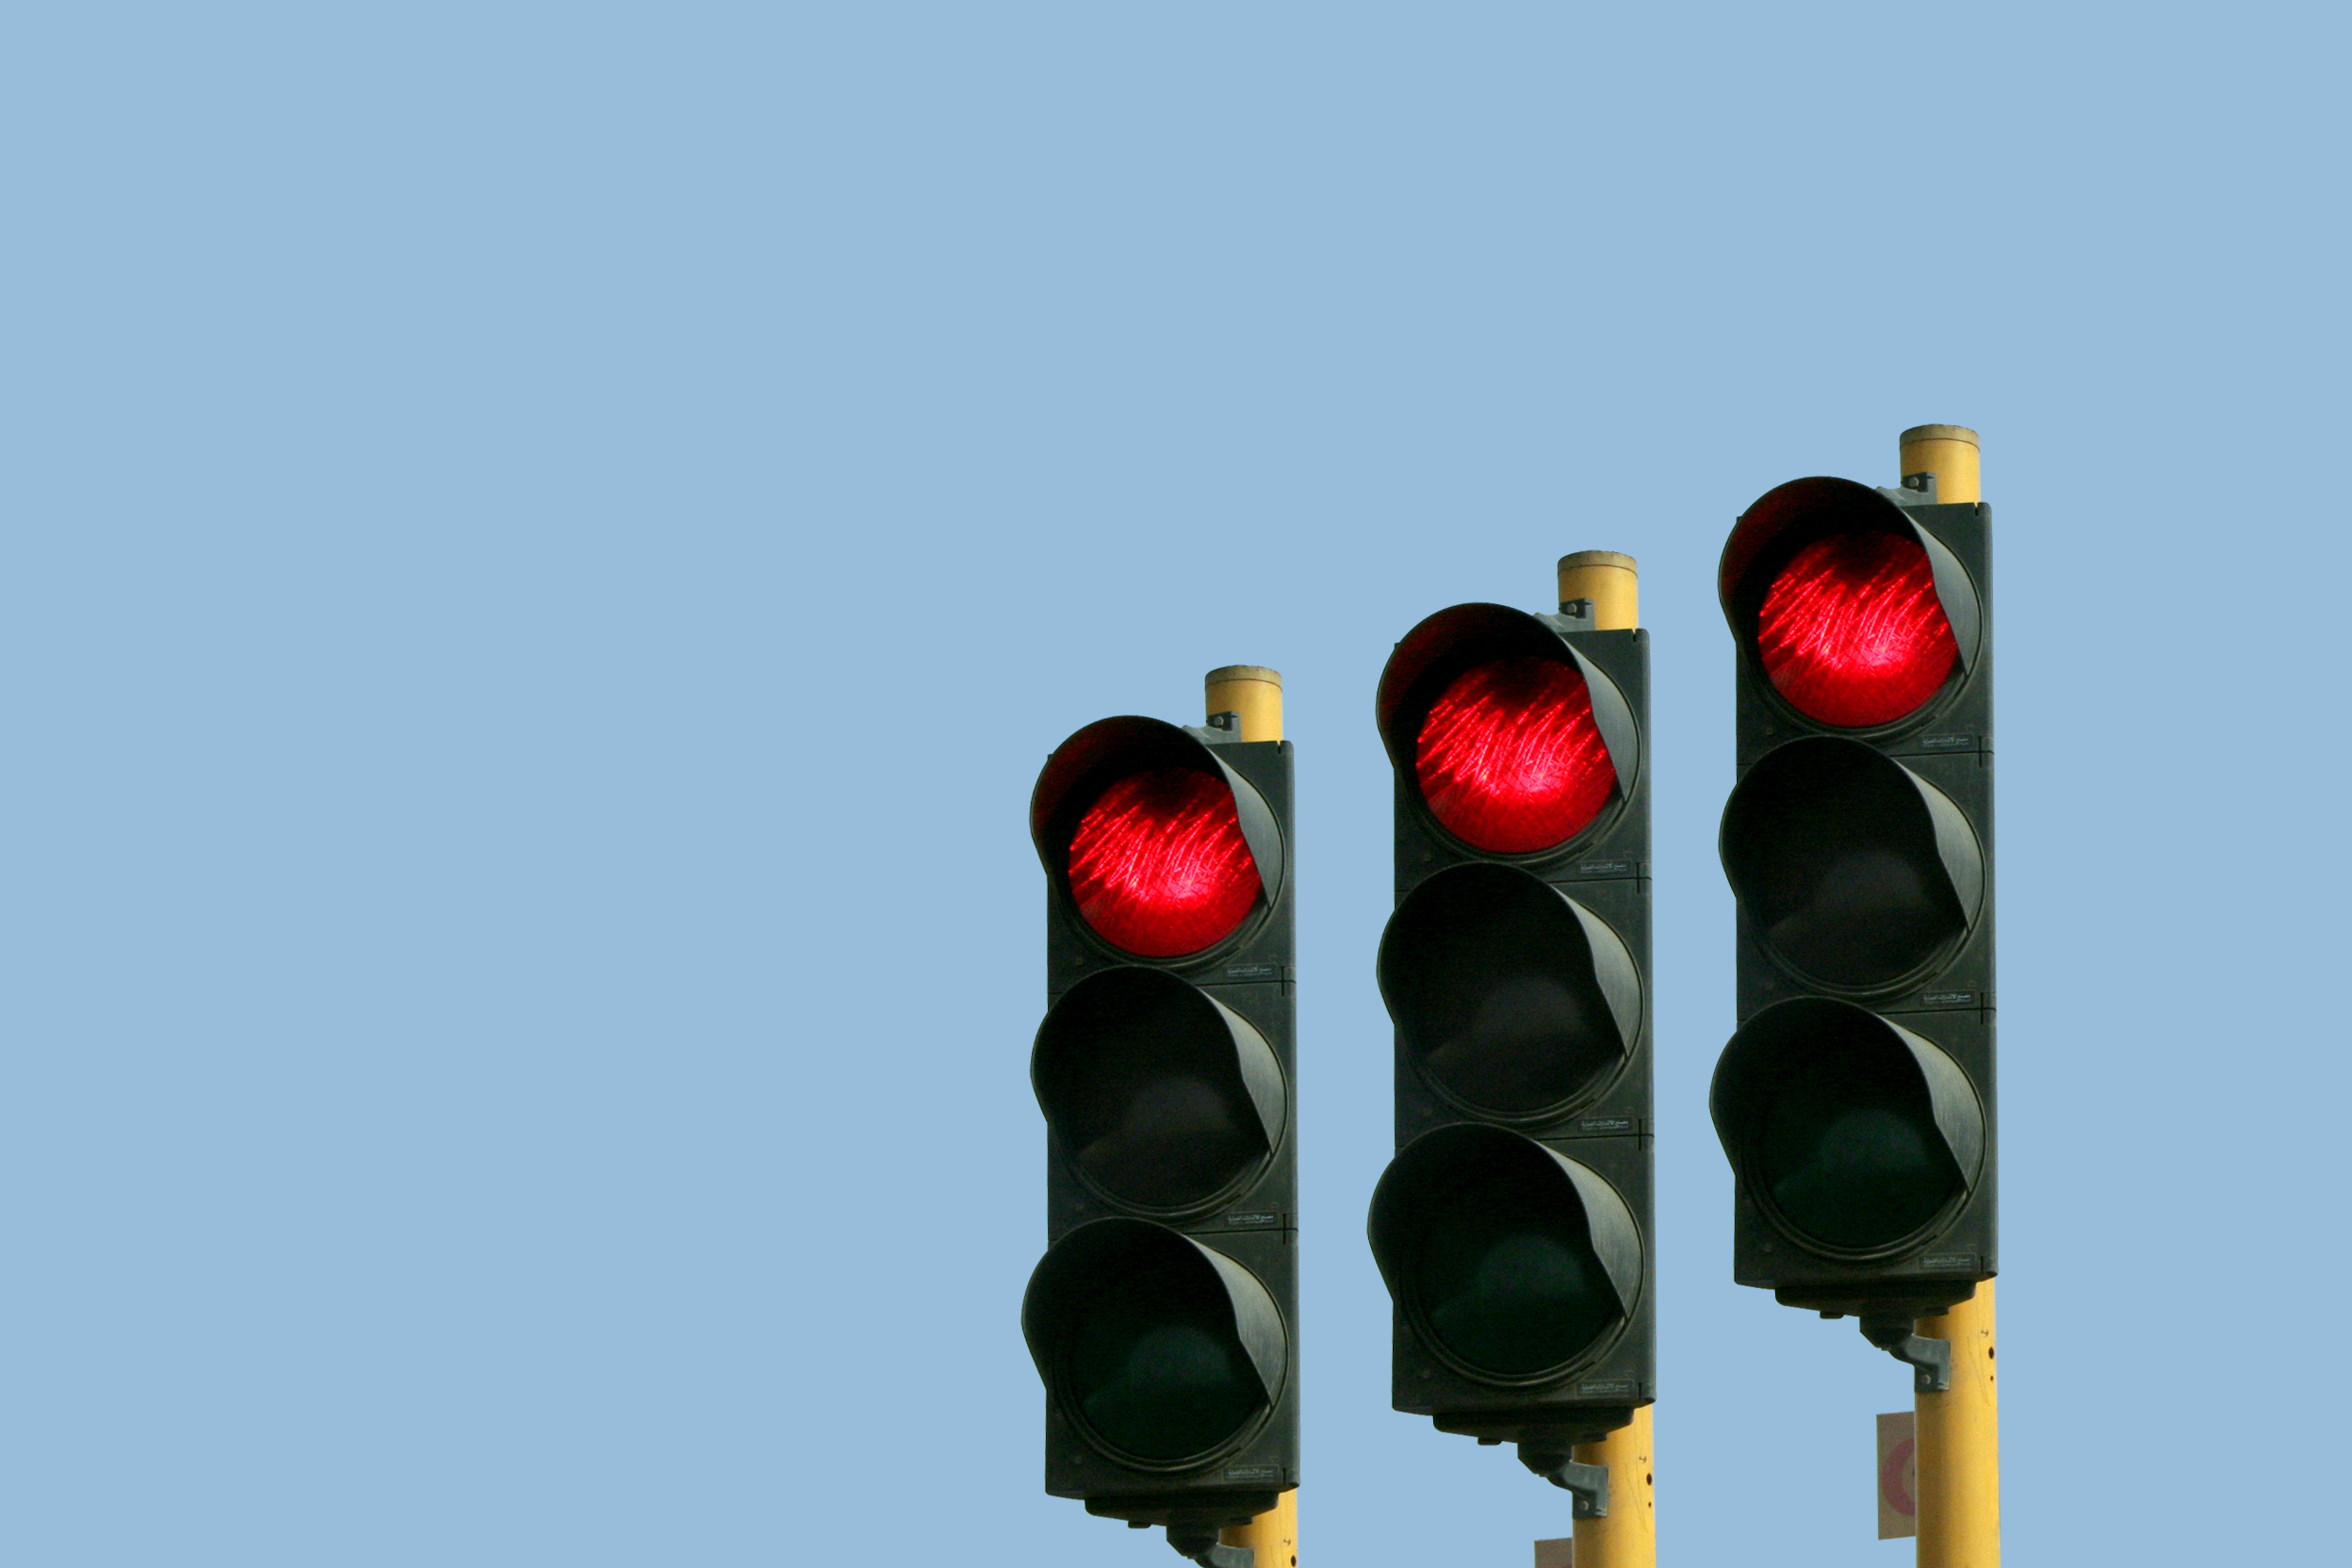 Traffic lights were made for man, not...